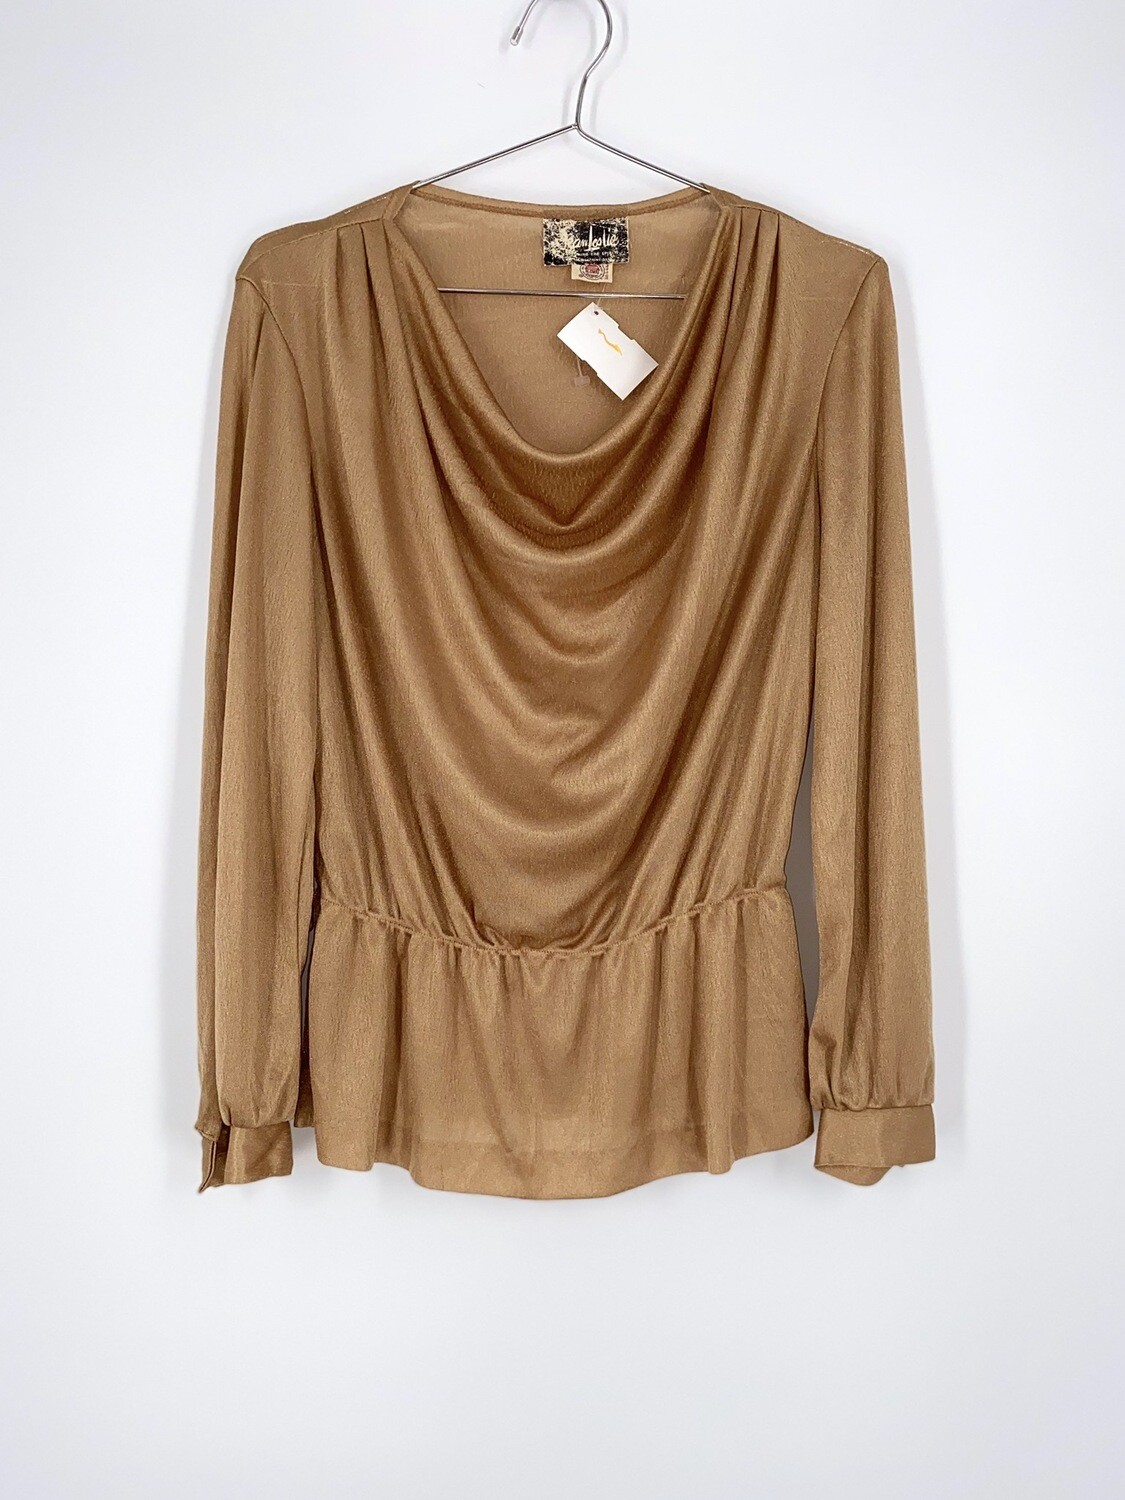 Gold Cowl Neck Top Size S